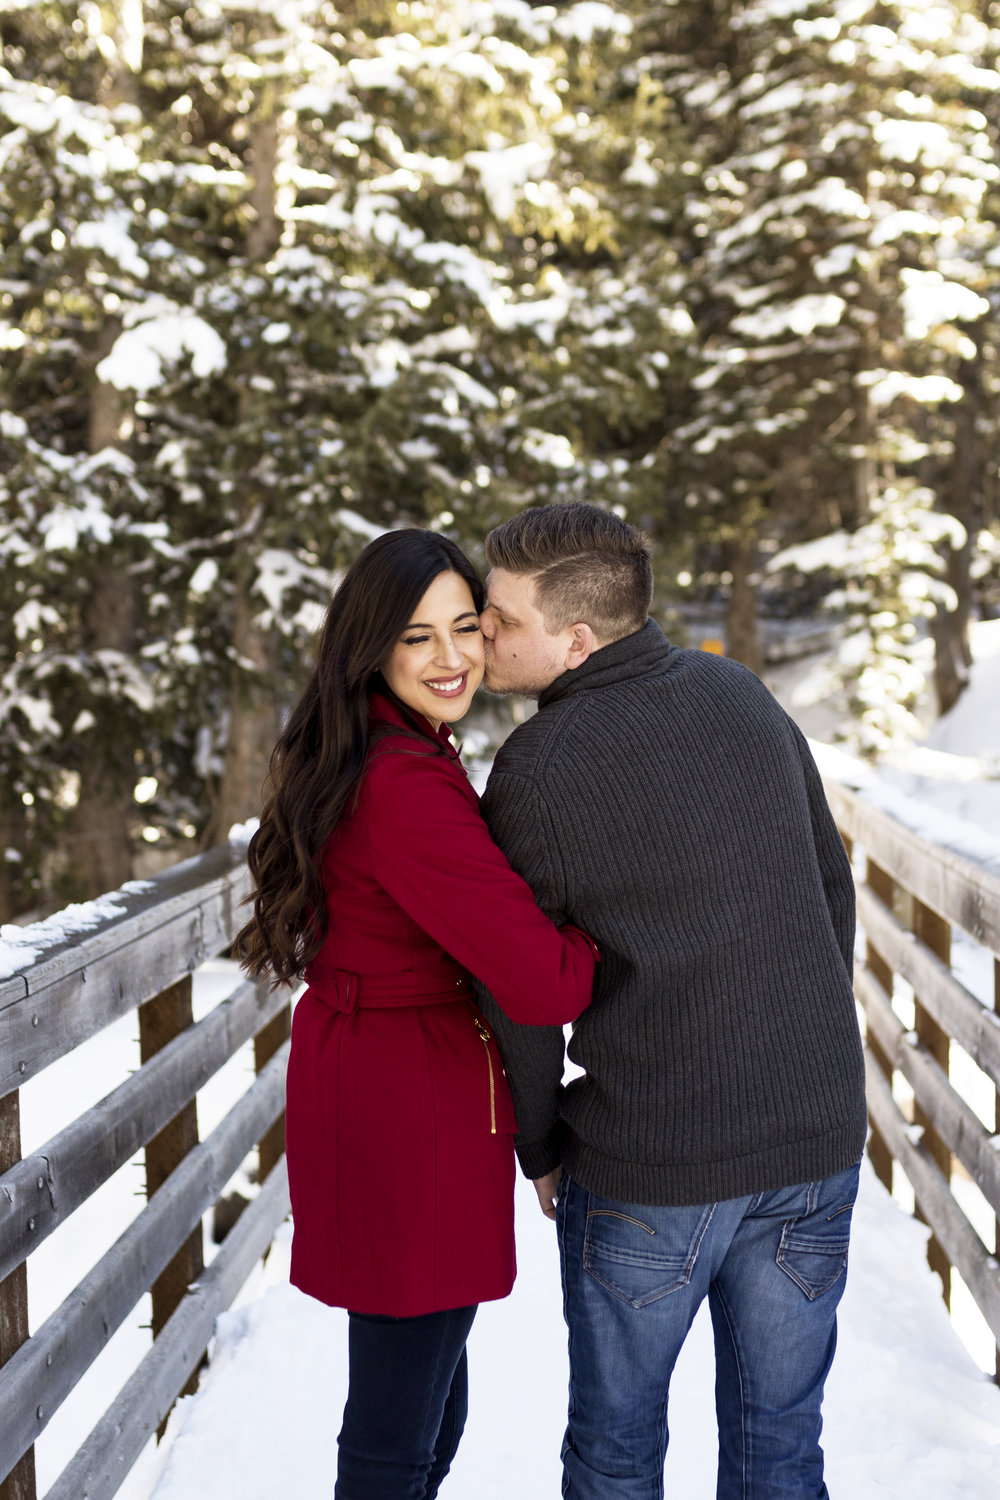 Snowey Utah Winter Engagements in Little Cottonwood Canyon by Bri Bergman Photography02.jpg